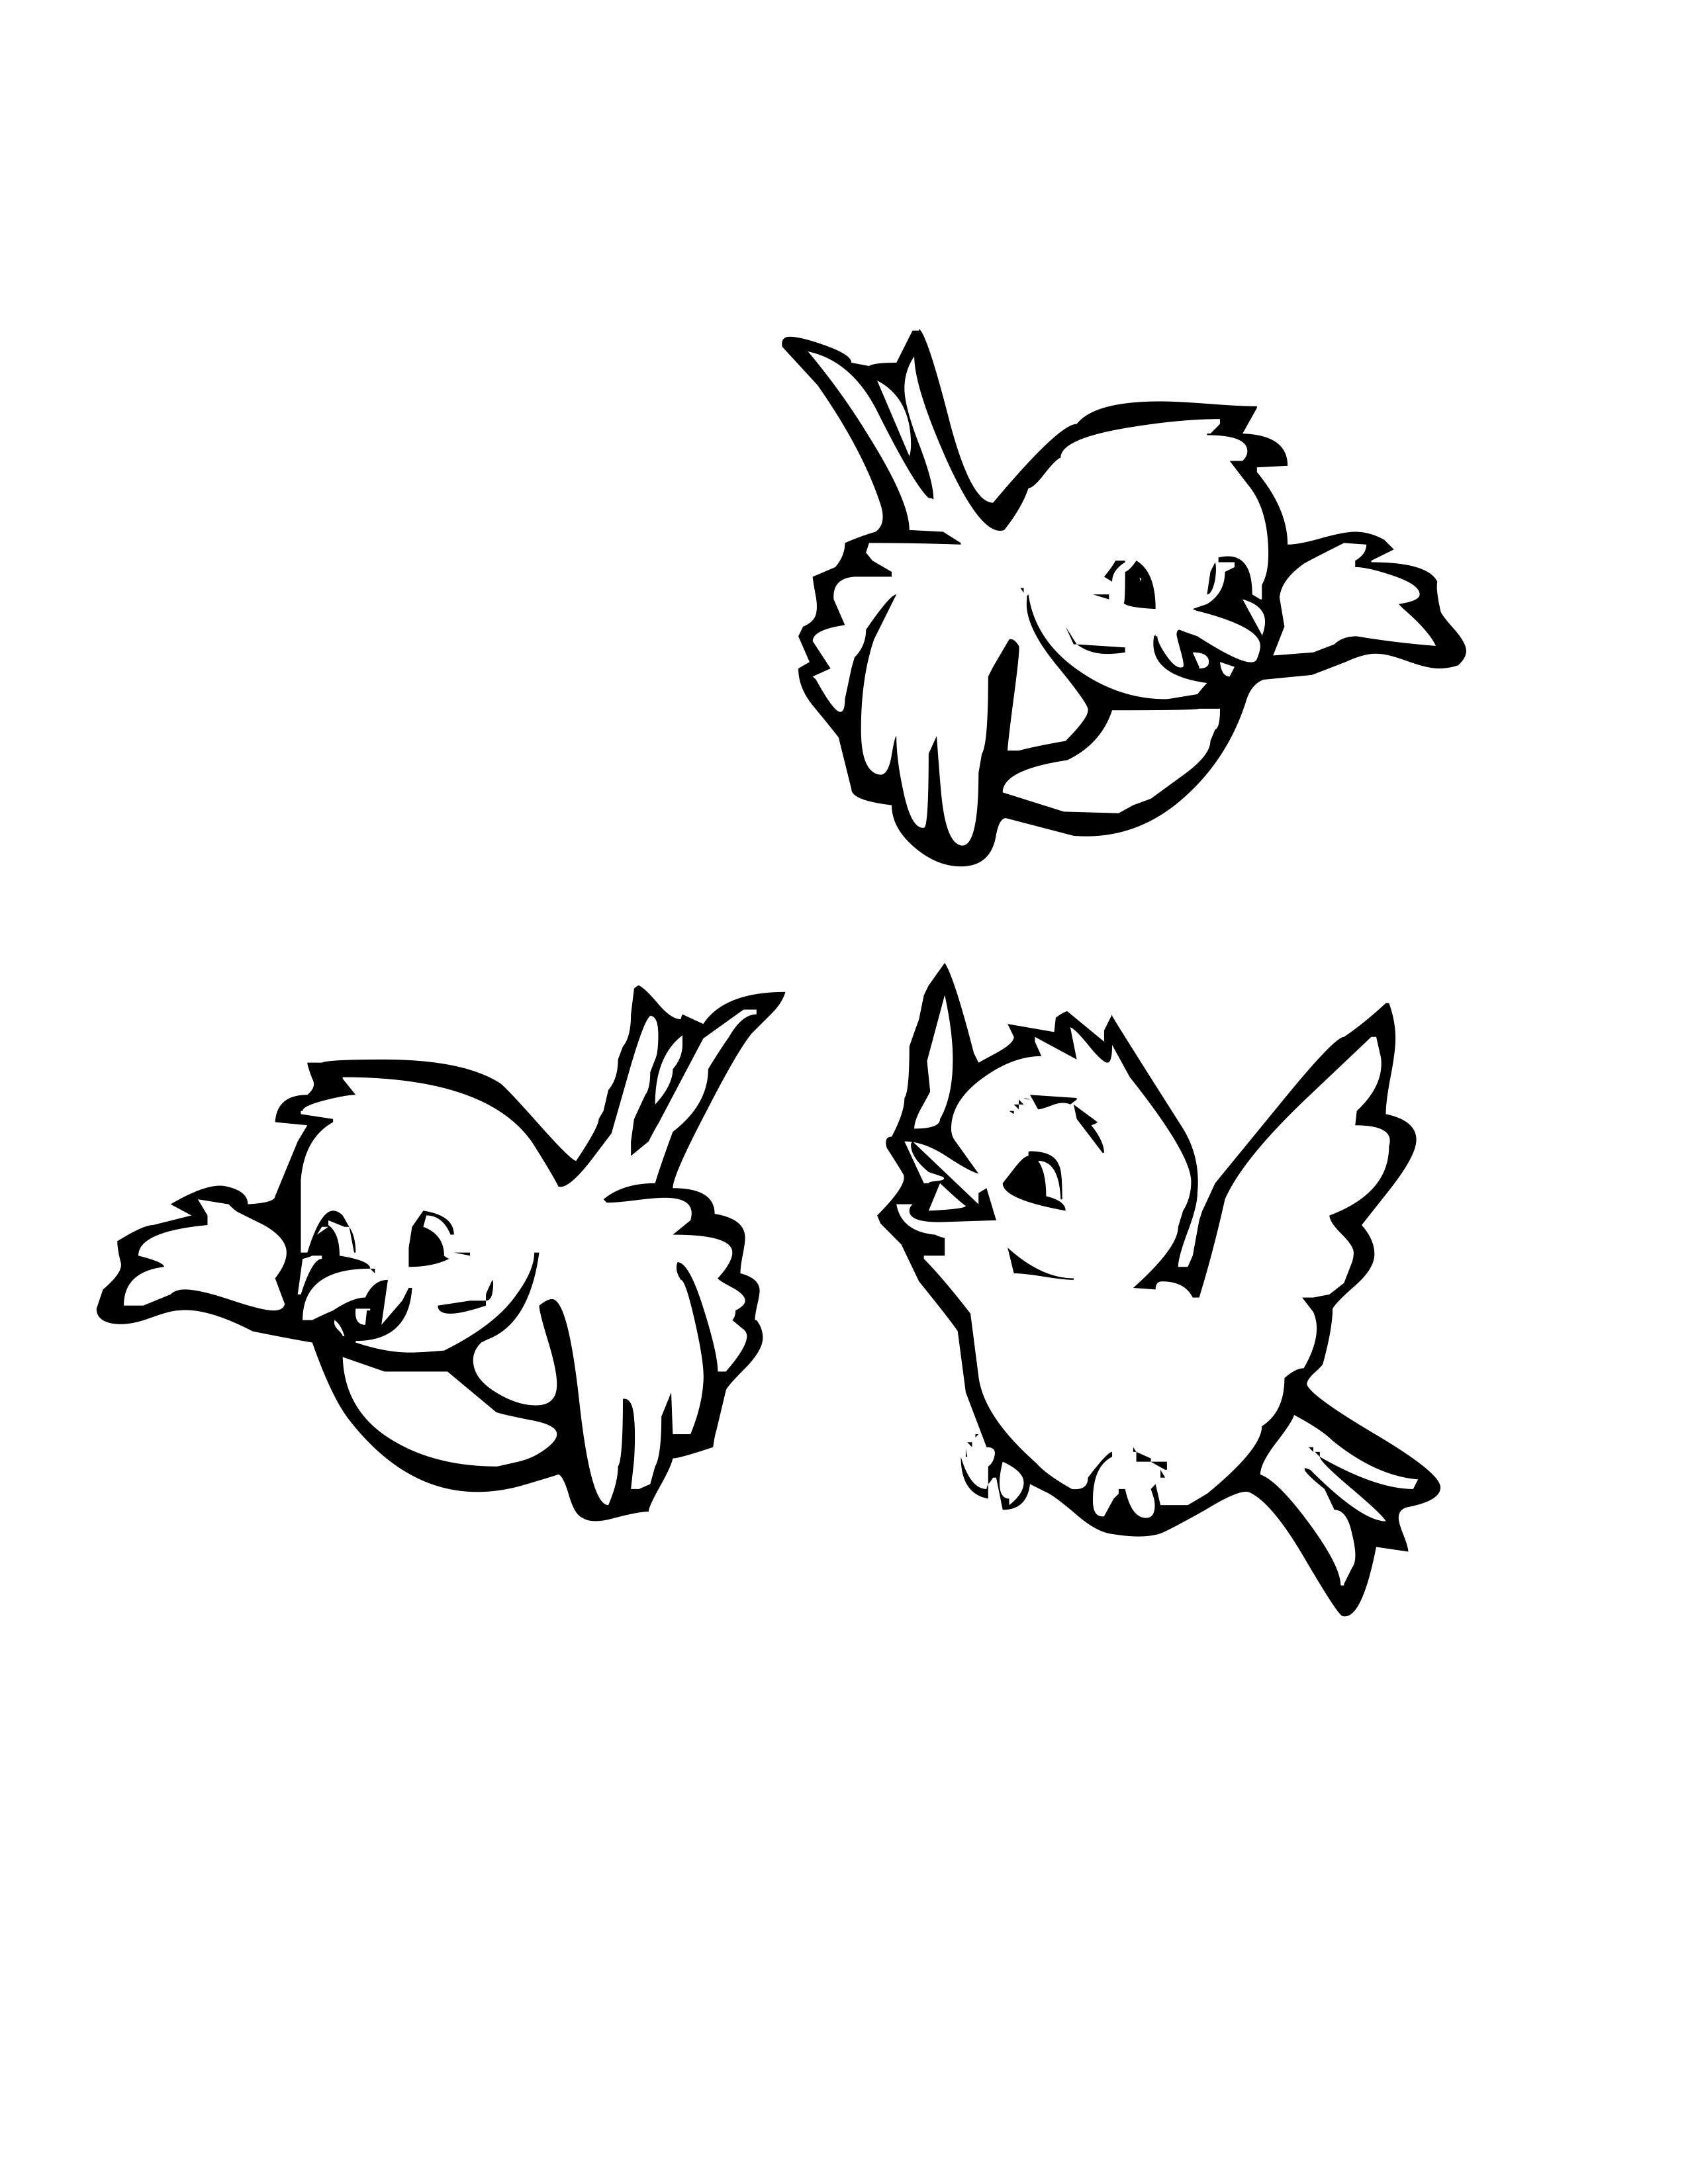 bird coloring pages rspb birdwatch - photo#20